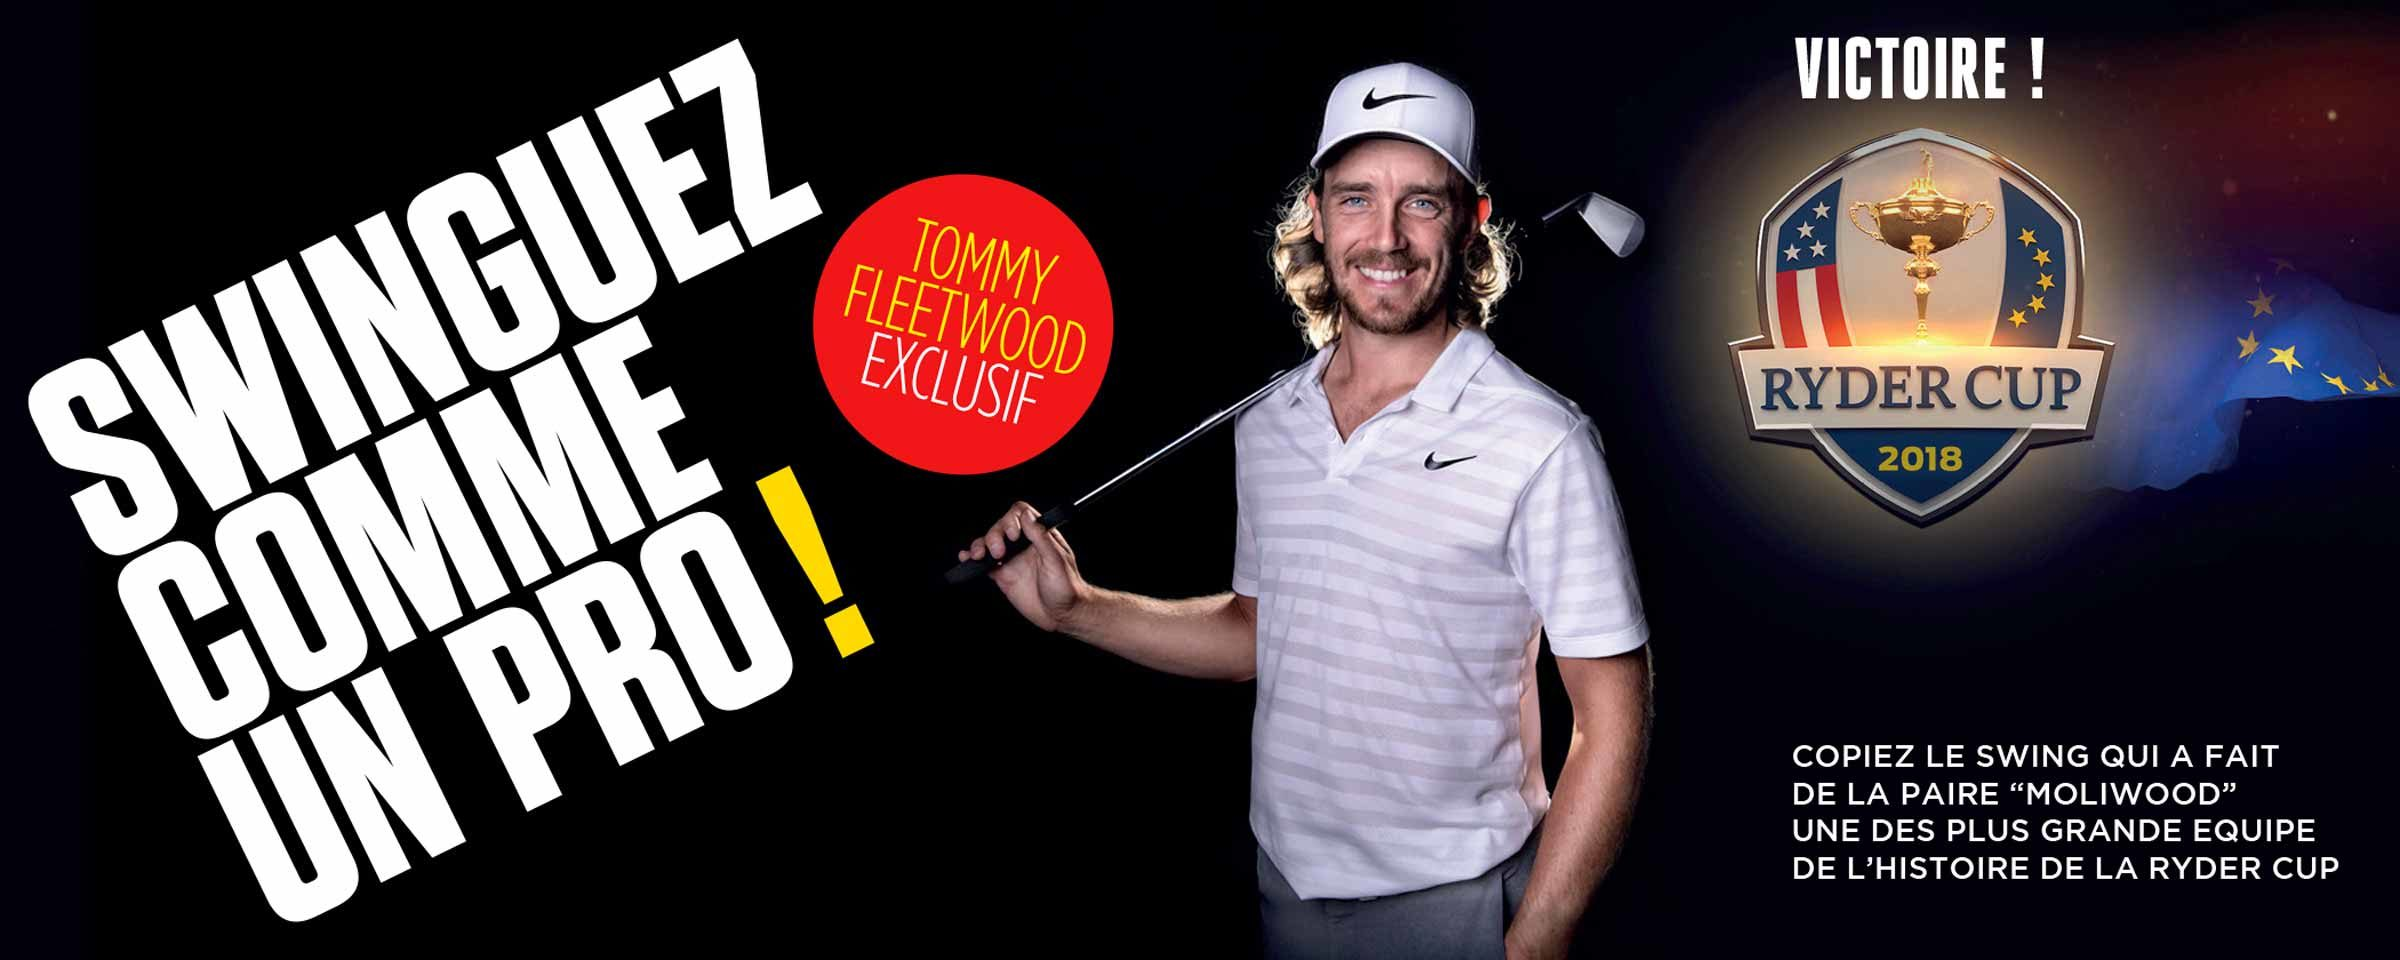 Tommy Fleetwood exclusif